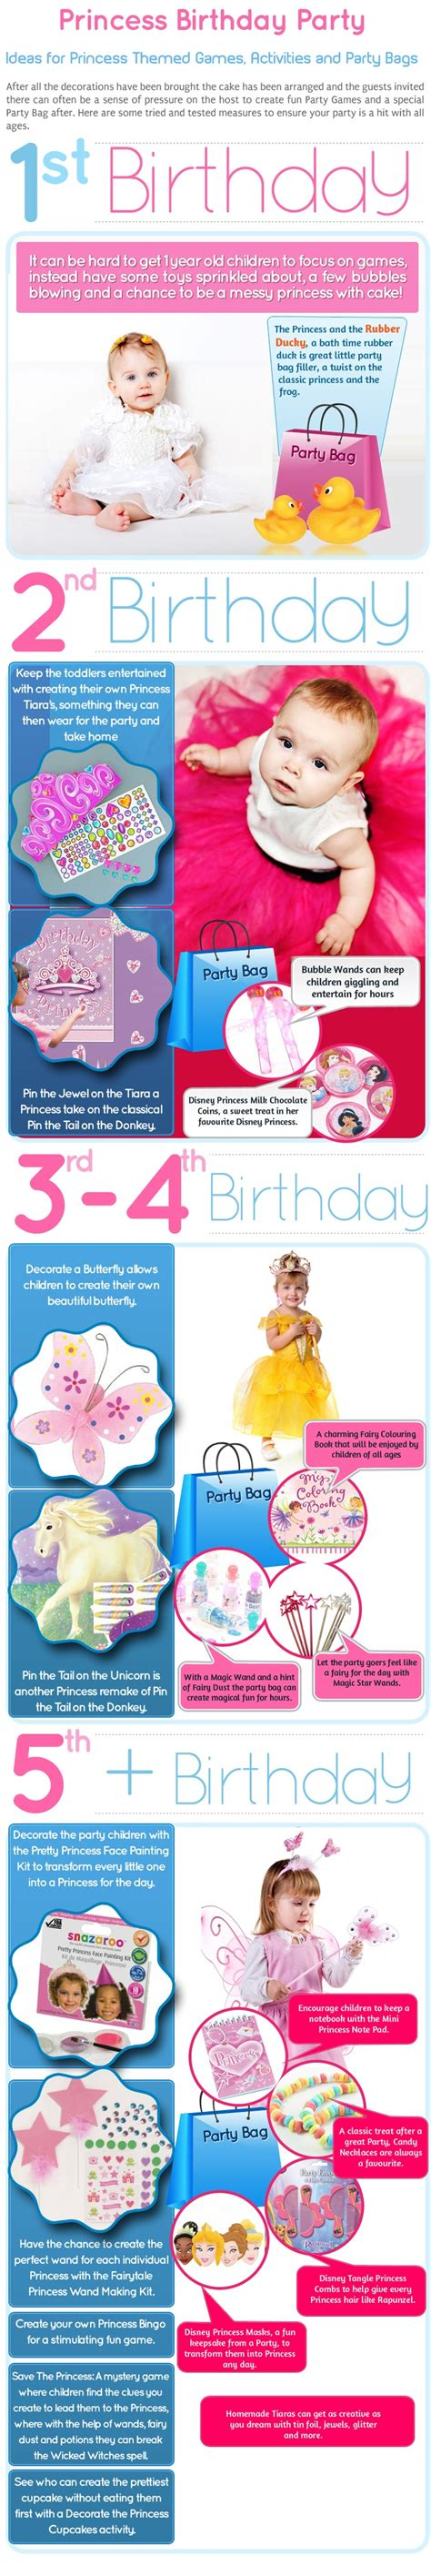 princess themed birthday games ideas for games activities and party bags for princess